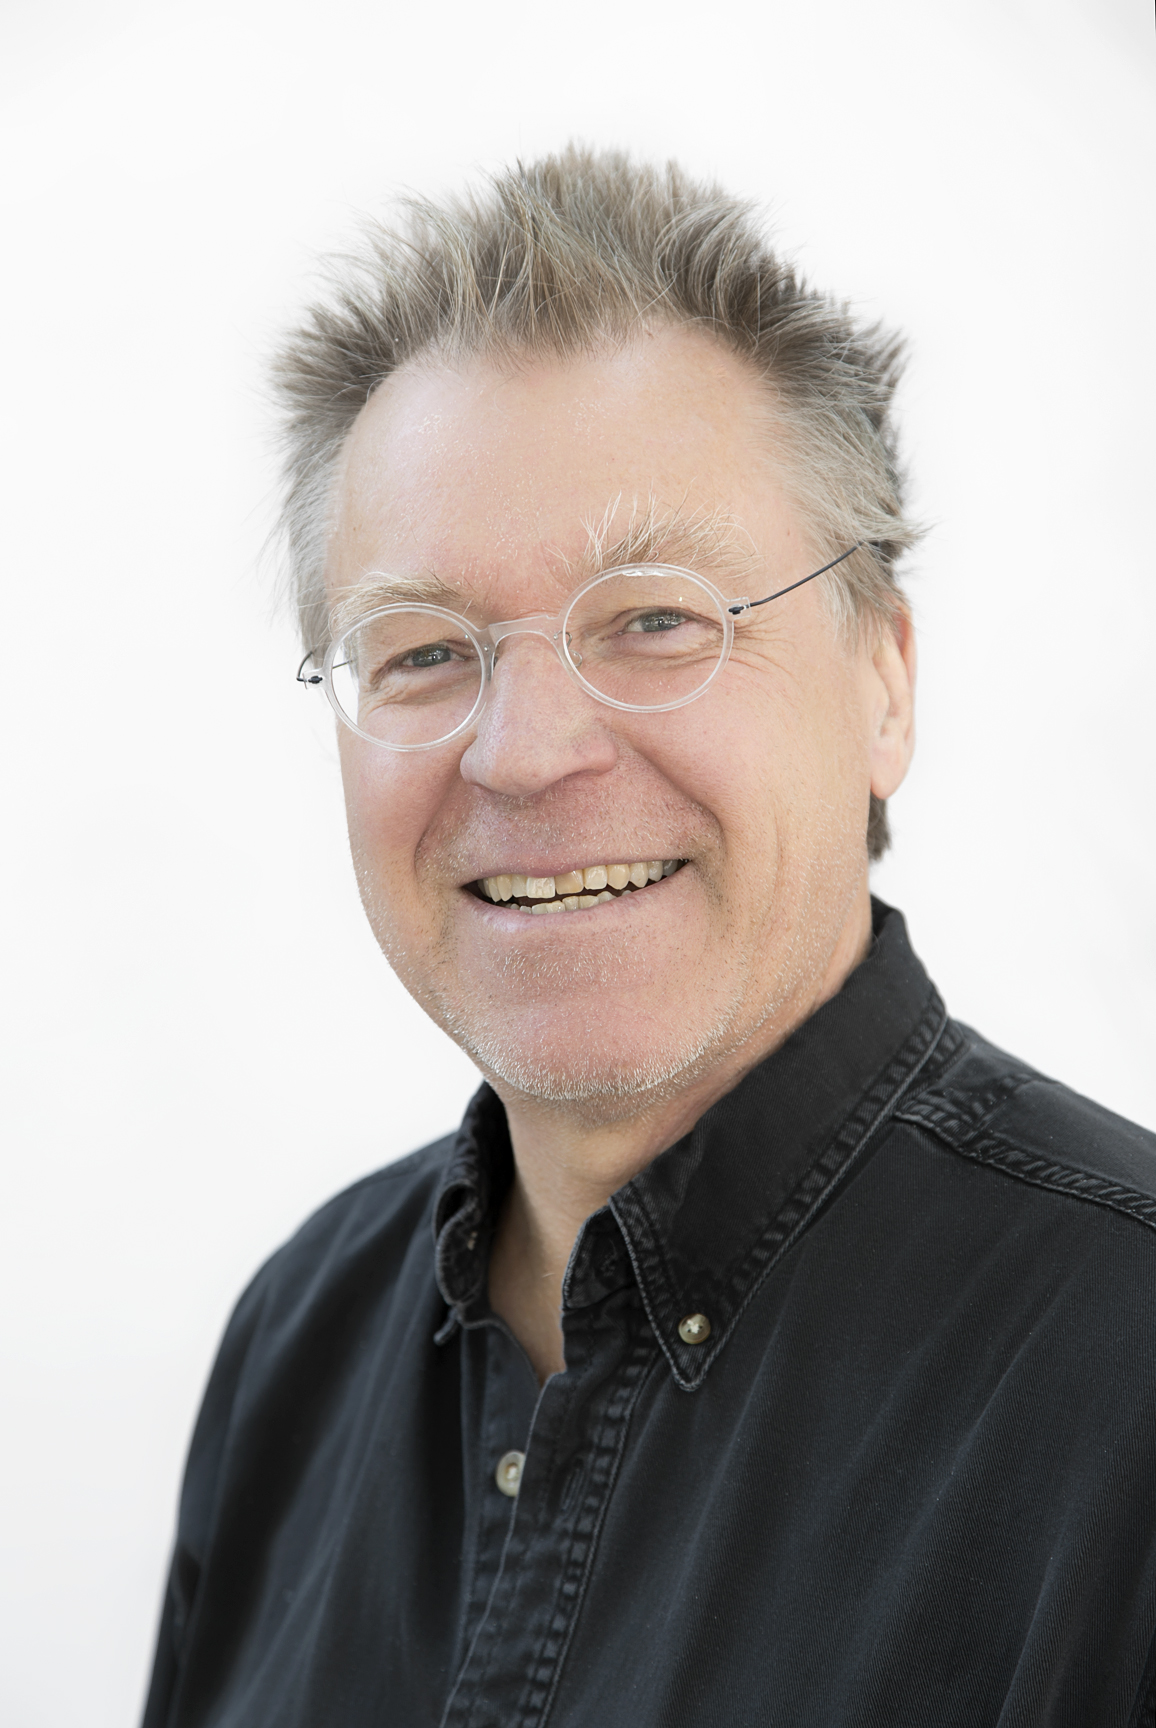 A headshot of Erik Jorgenson, with round rimless glasses and gray hair.